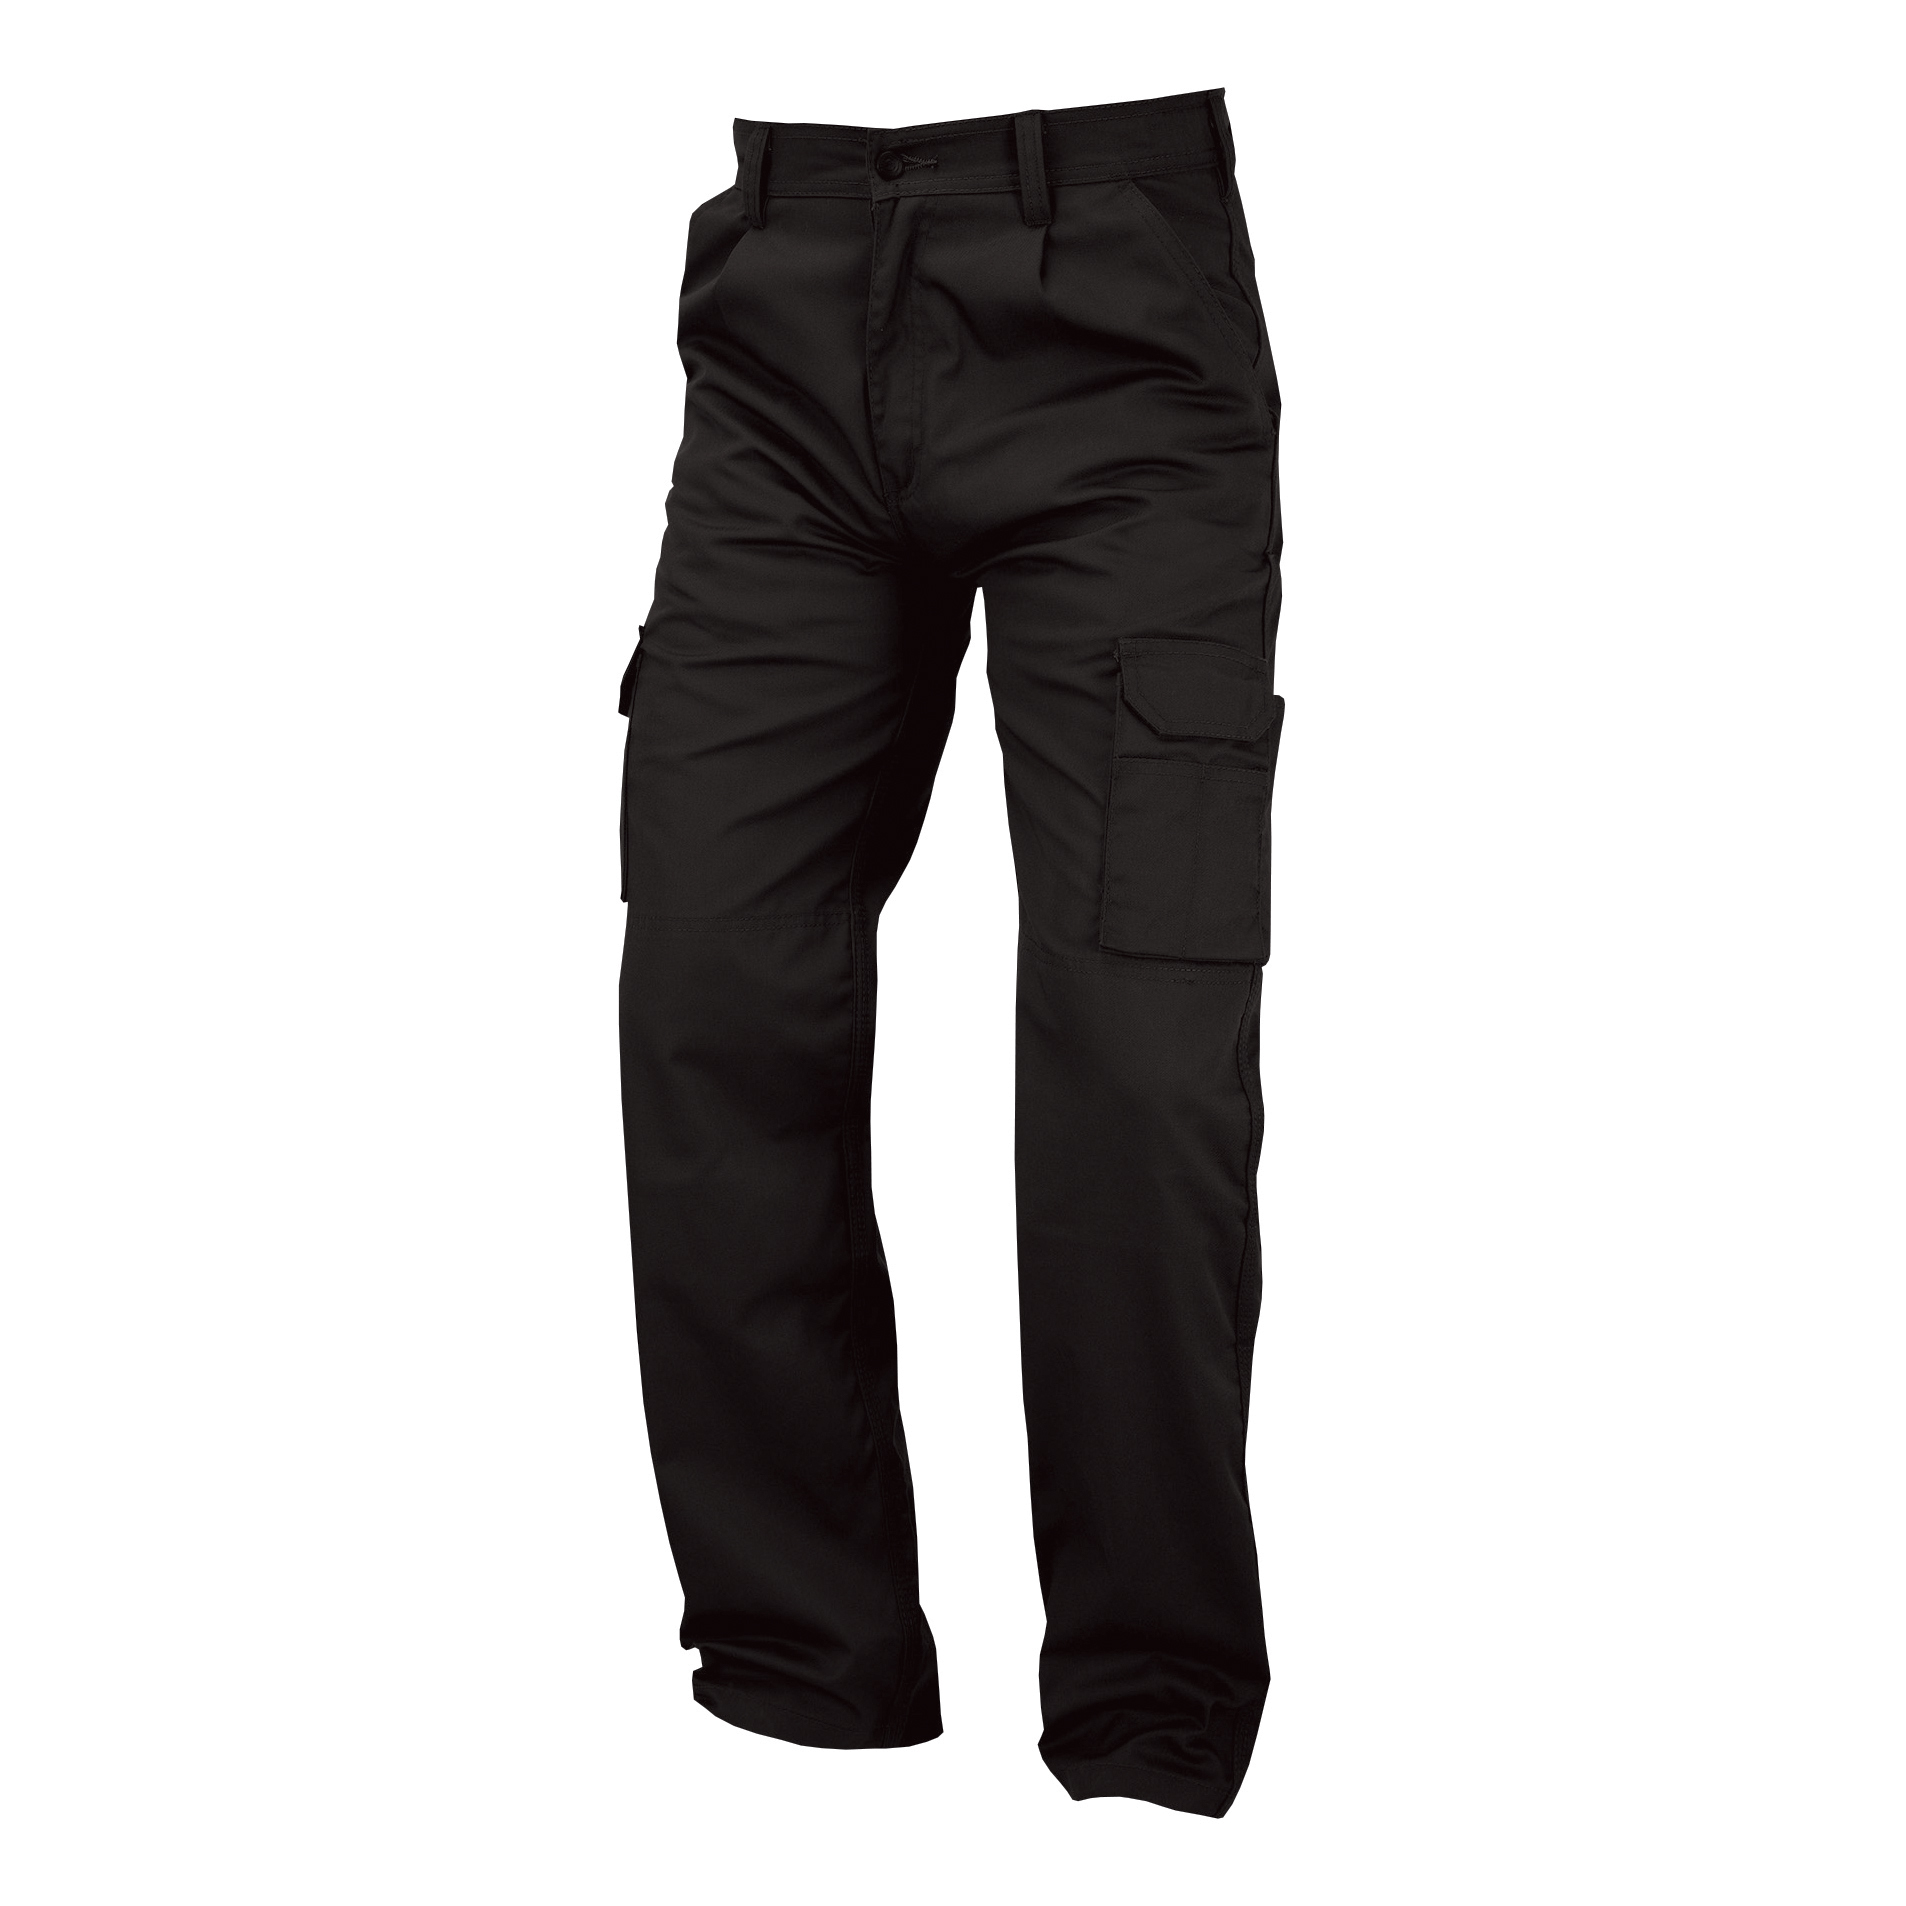 Combat Trousers Polycotton with Pockets Regular Black 38inch 1-3 Days Lead Time